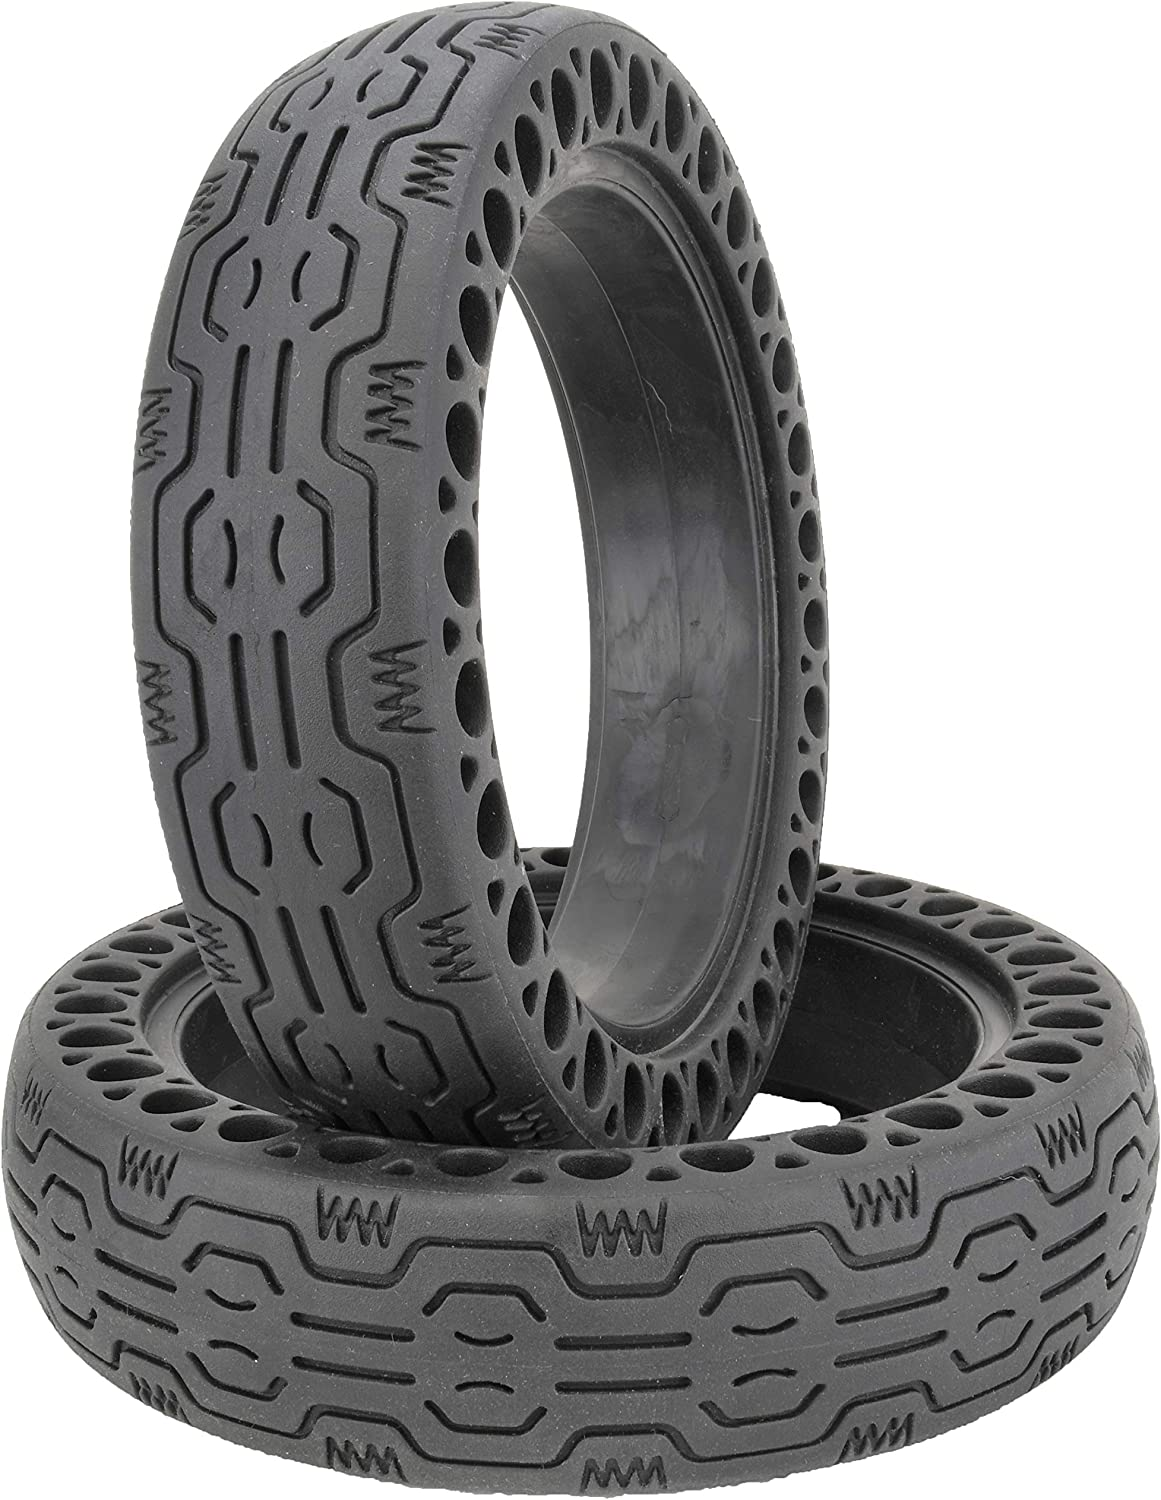 Plate Solid Tire//Tyre Xiaomi For M365//Pro Electric Scooter Spare Part Anti-flat